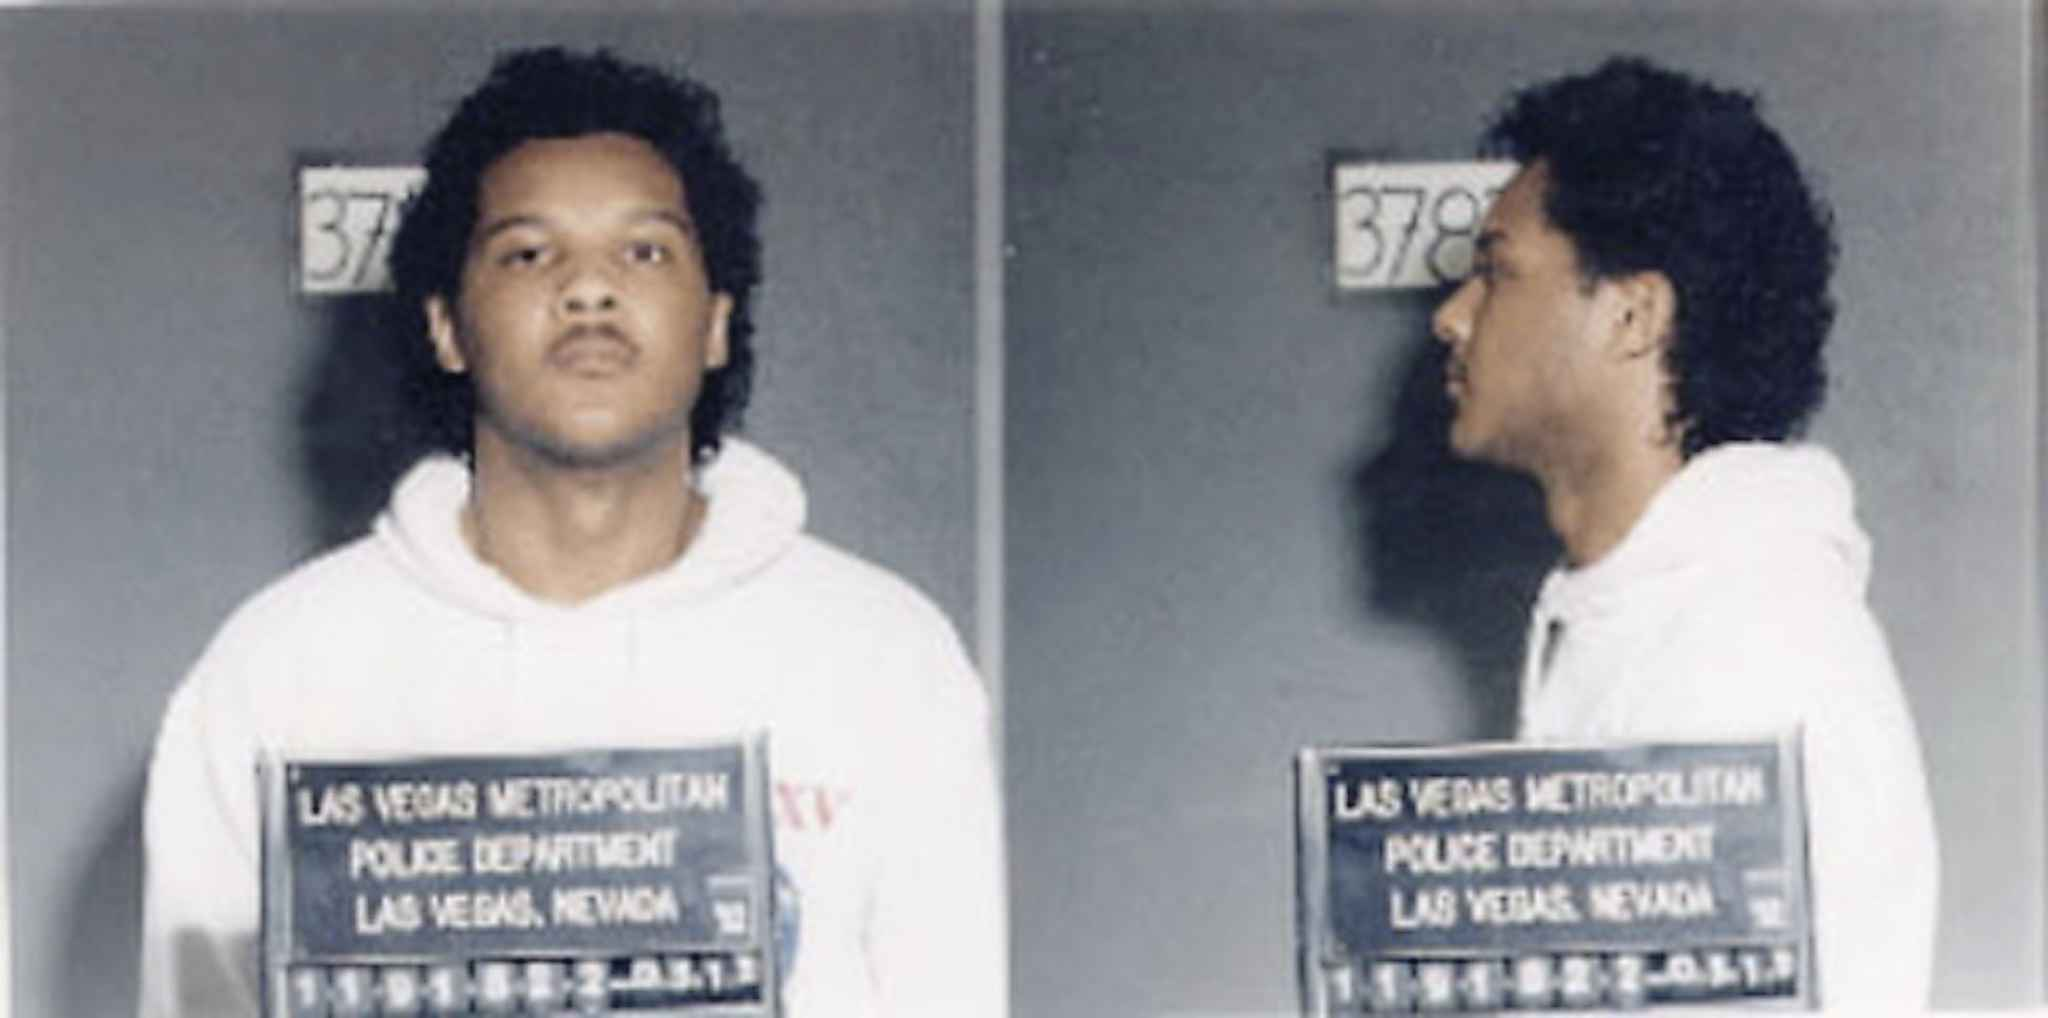 Gary Wayne Gabriel Patterson was arrested on pimping charges in Las Vegas in the early 90s.